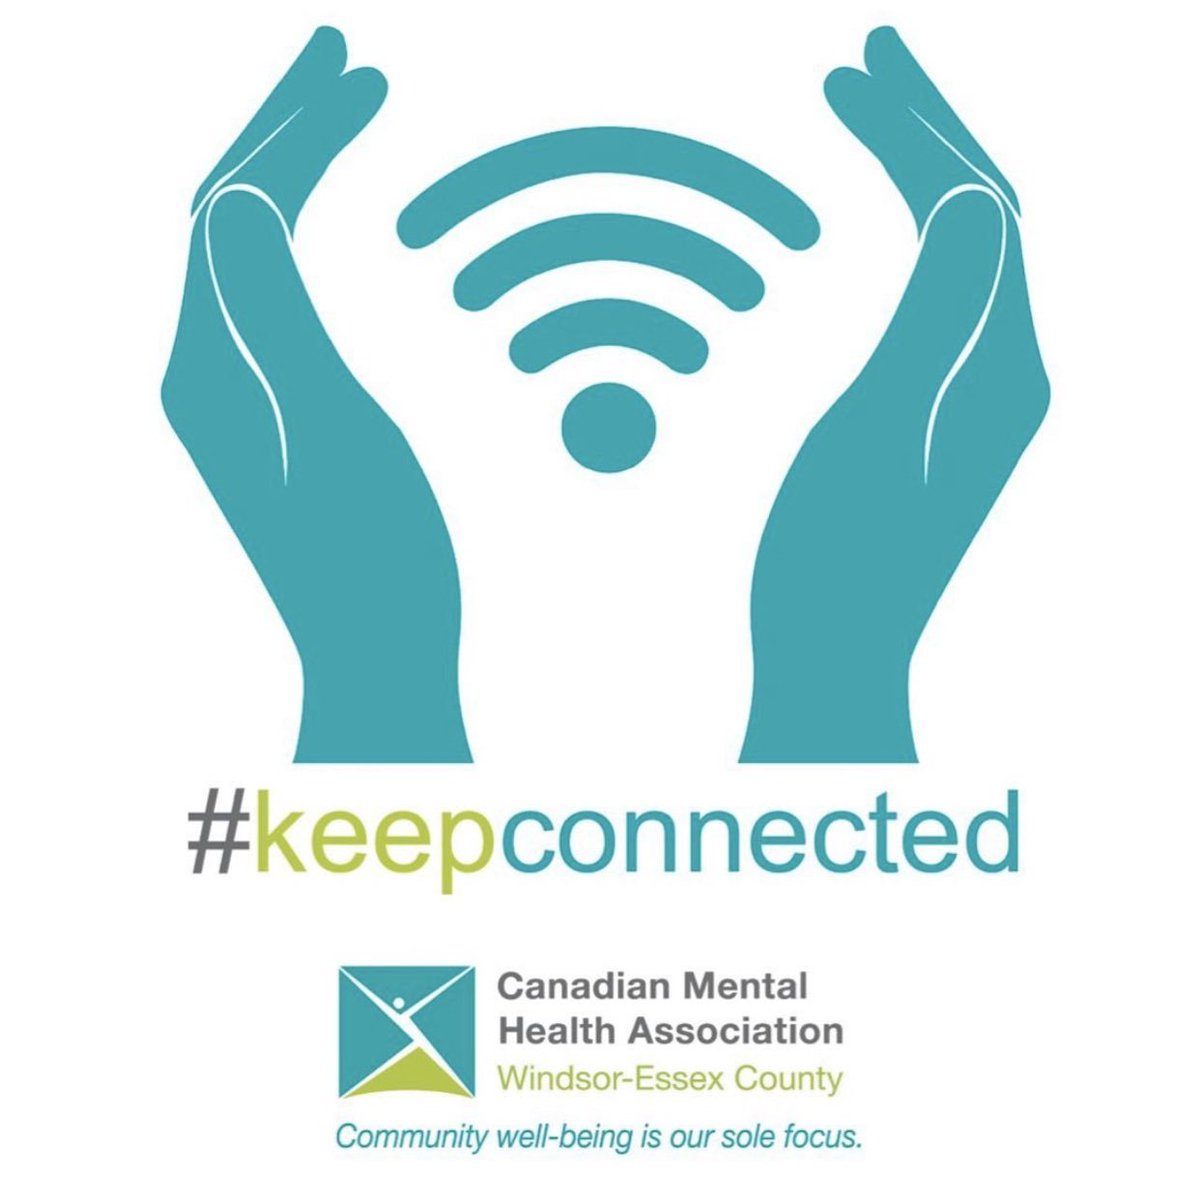 test Twitter Media - Tx @danmac800 We agree @kwillism & our team @ CMHA-WECB are leaders in #MentalHealth It is our #SoleFocus. Our communications/education dept isn't funded from government so we greatly appreciate our sponsors/donors. It's how we can provide some webinars & resources in this crisis https://t.co/JeBMTZ2EYq